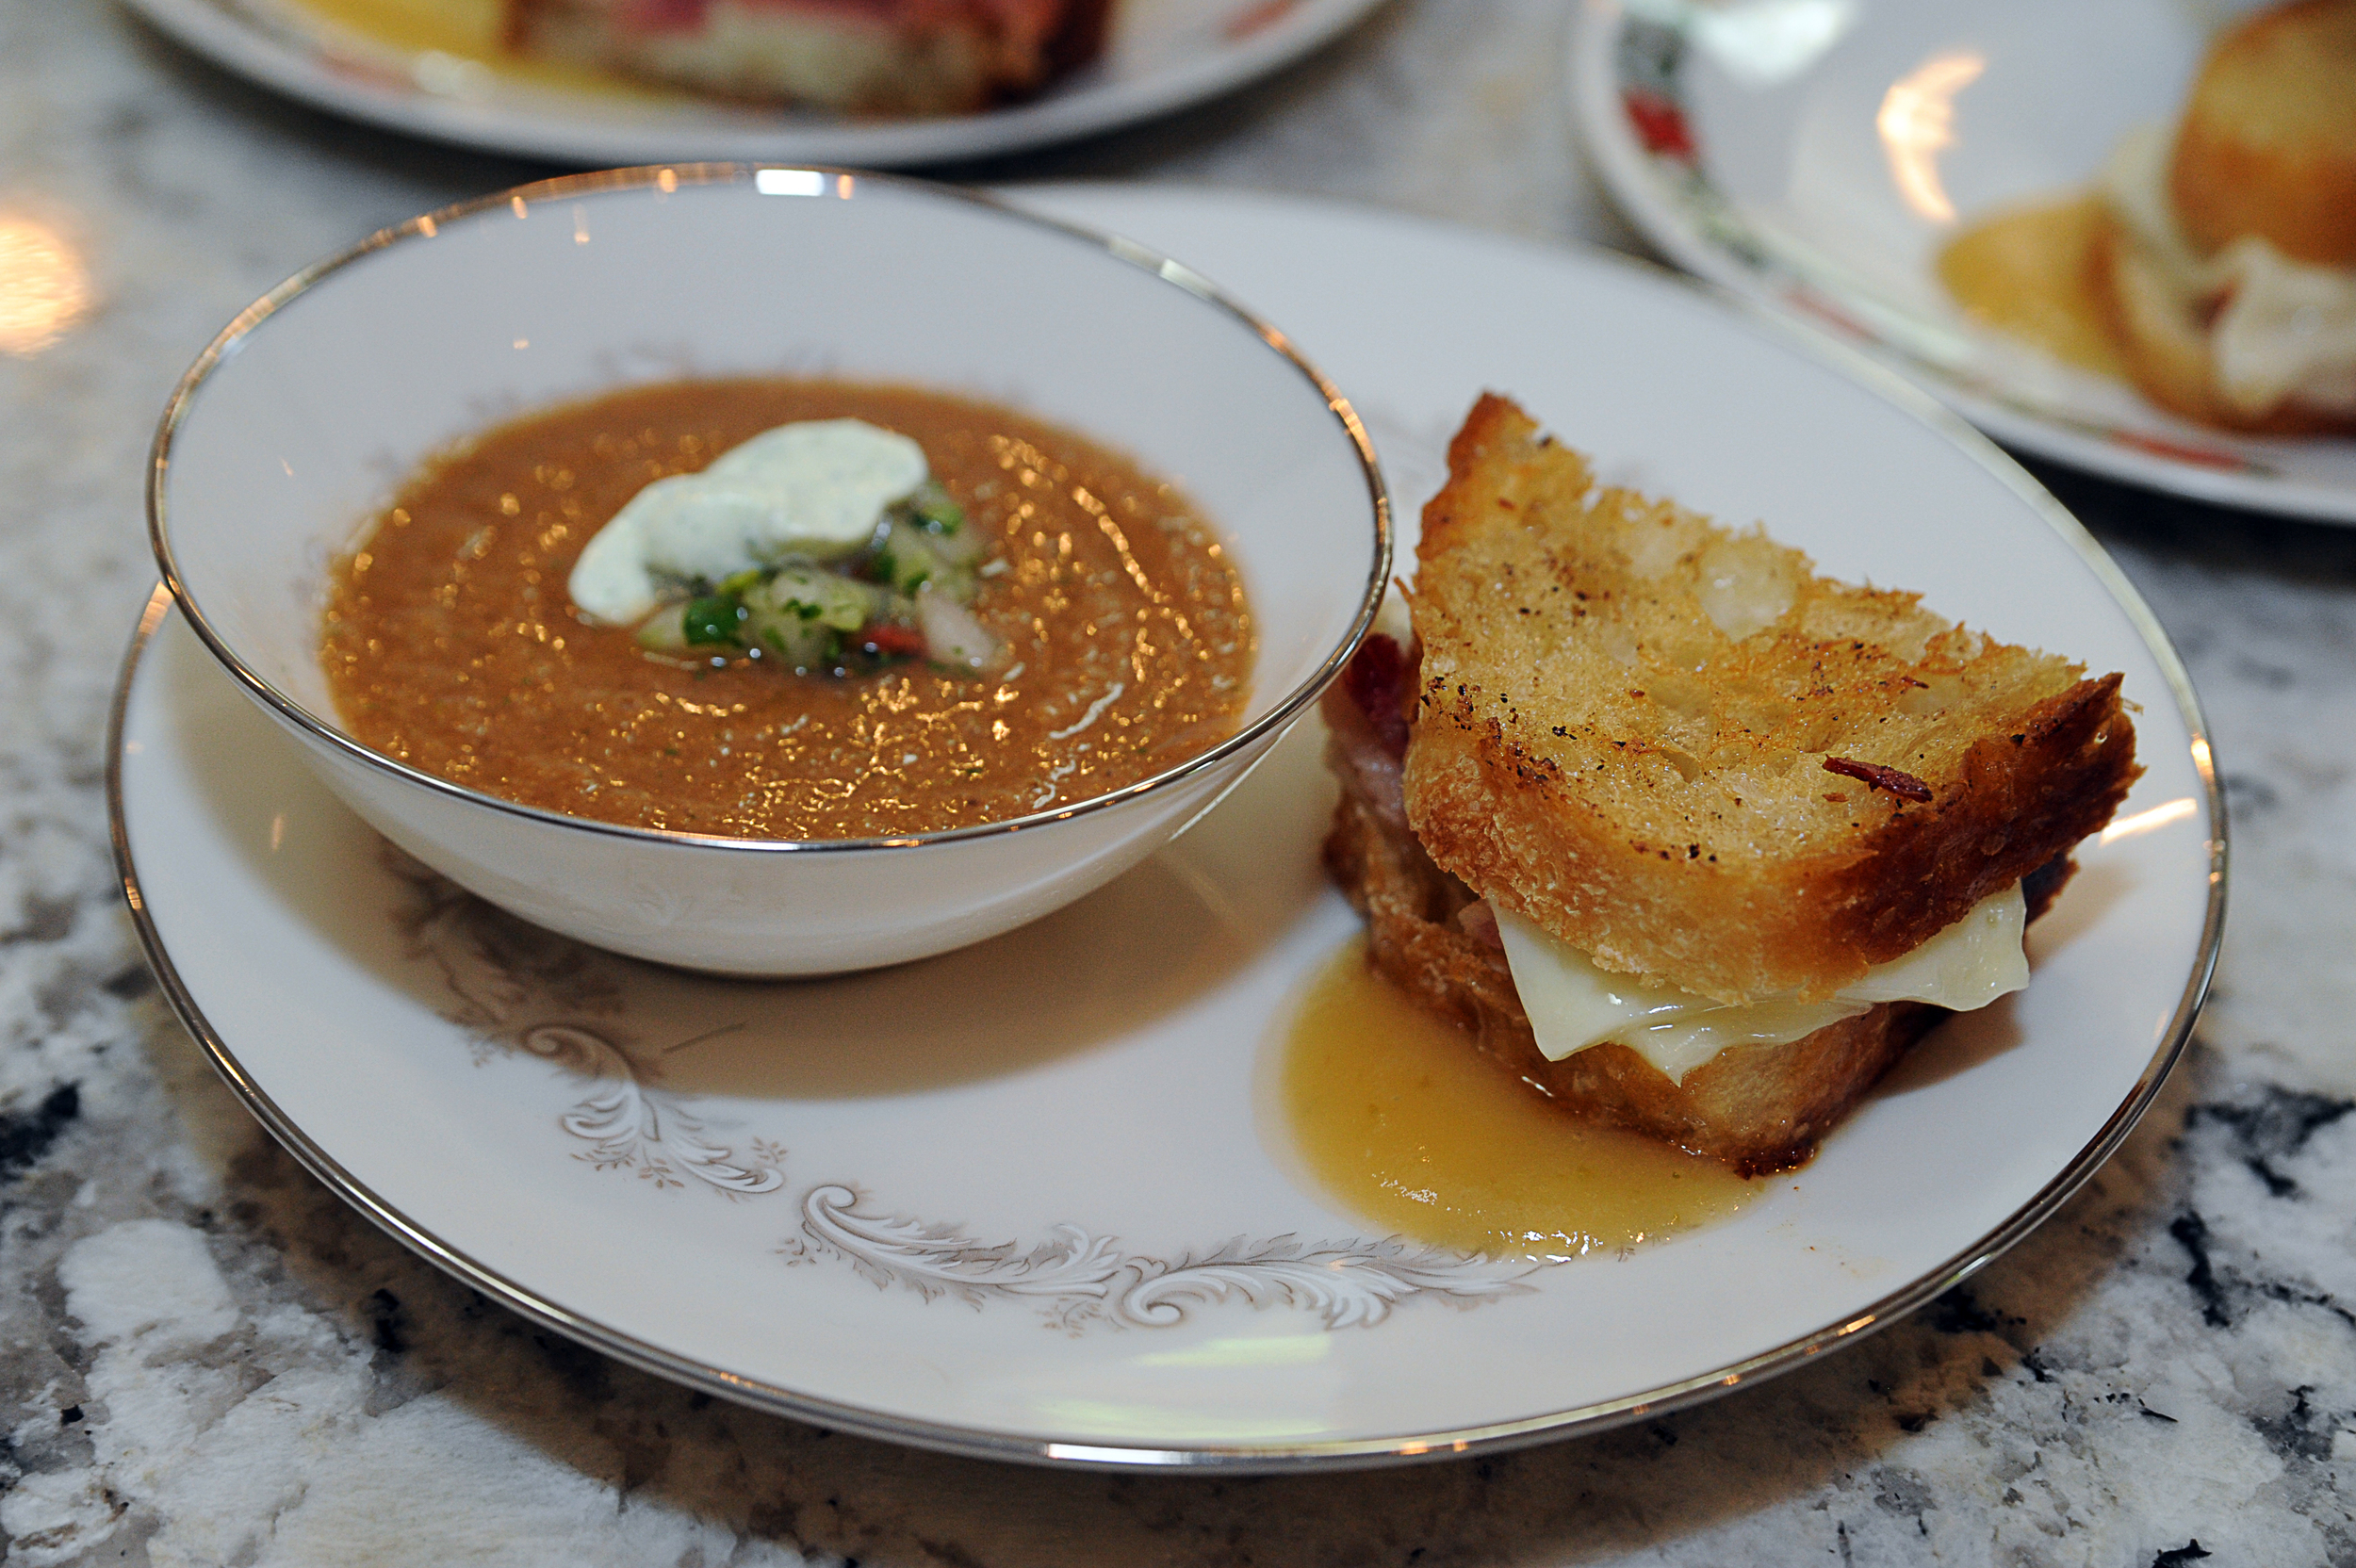 Grilled cheese like you've never had before!  Photo credit: Paul Purpura